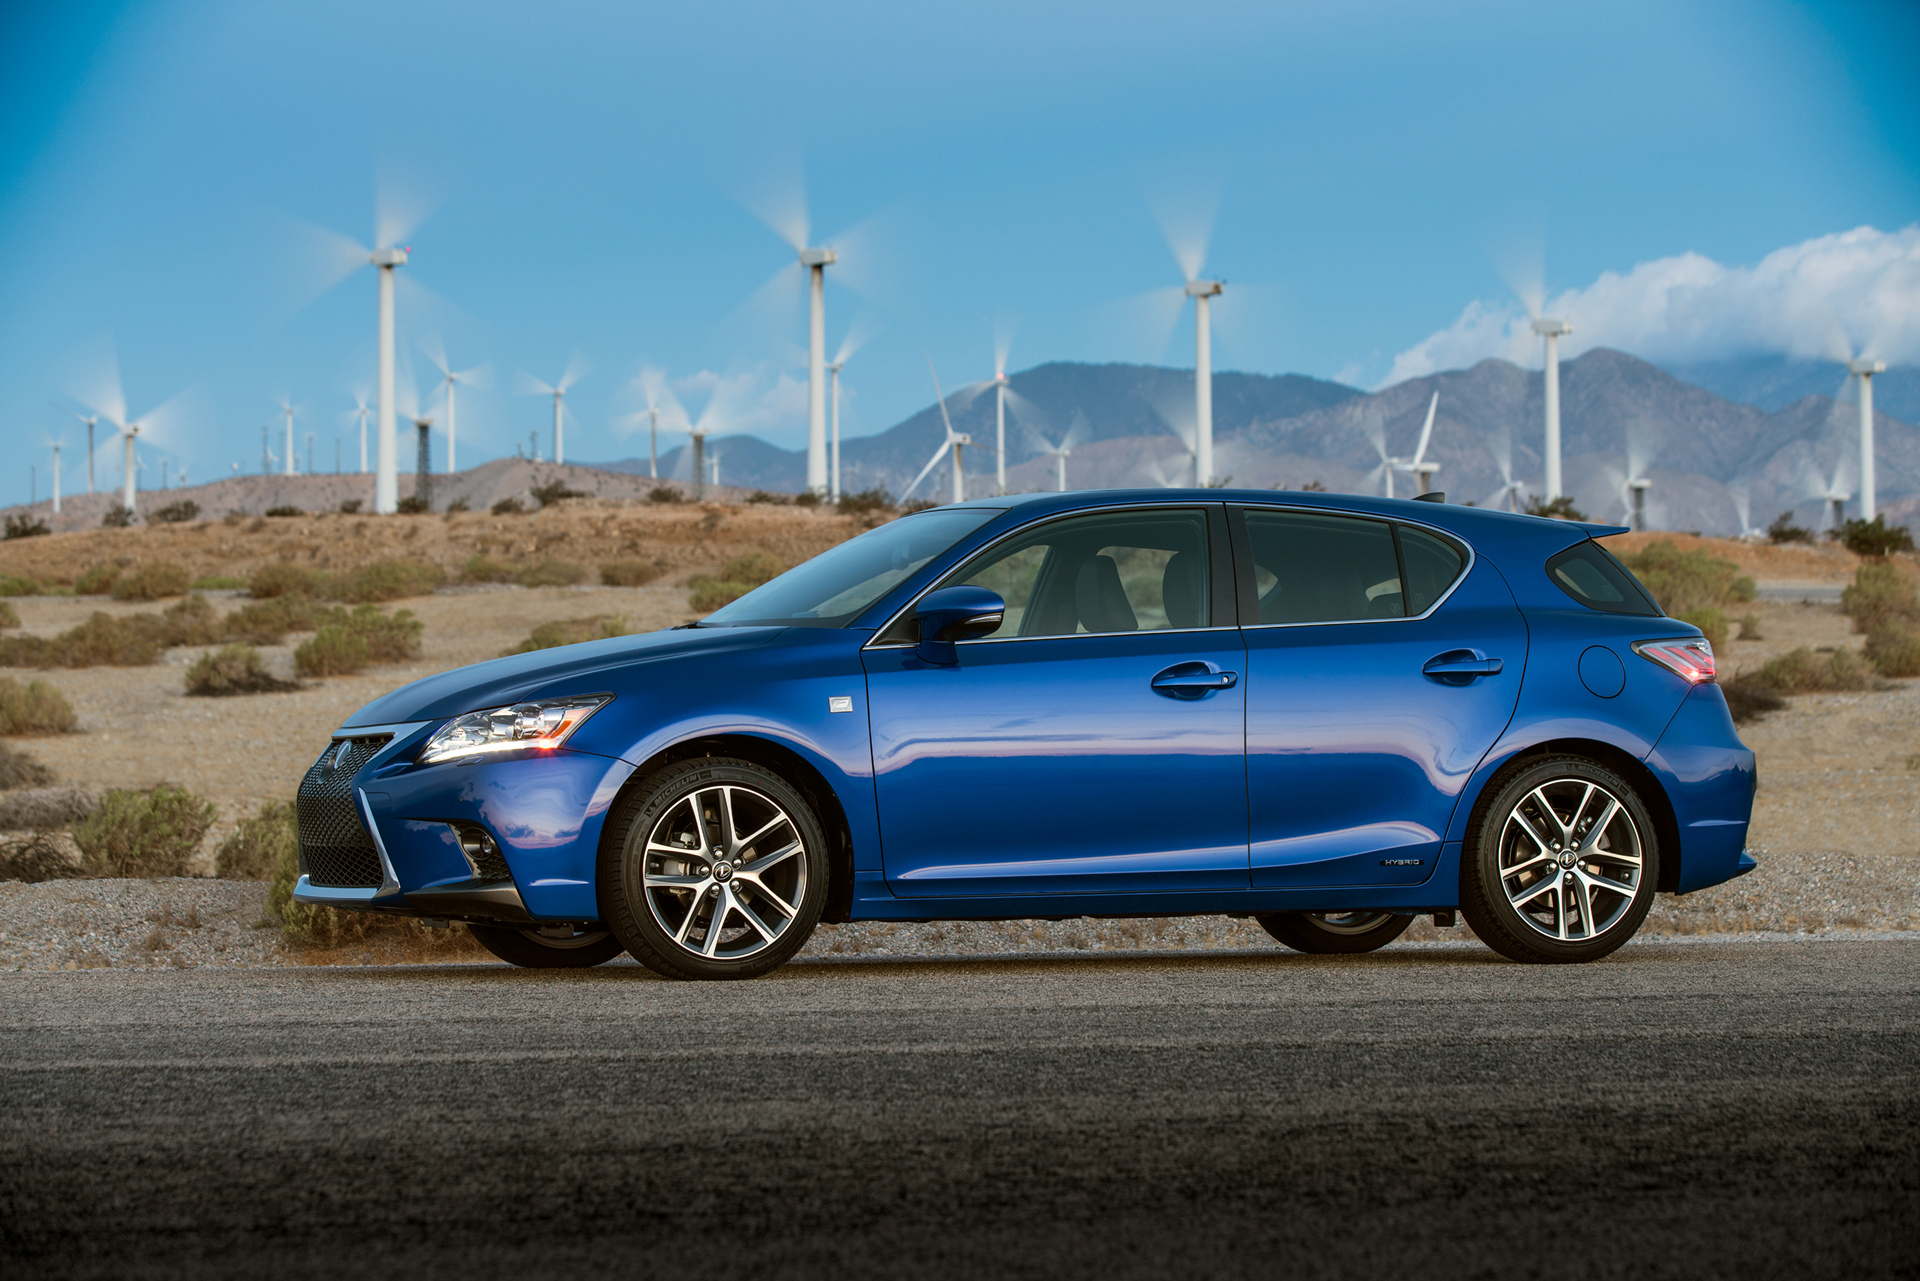 2016 Lexus CT 200h F SPORT © Toyota Motor Corporation